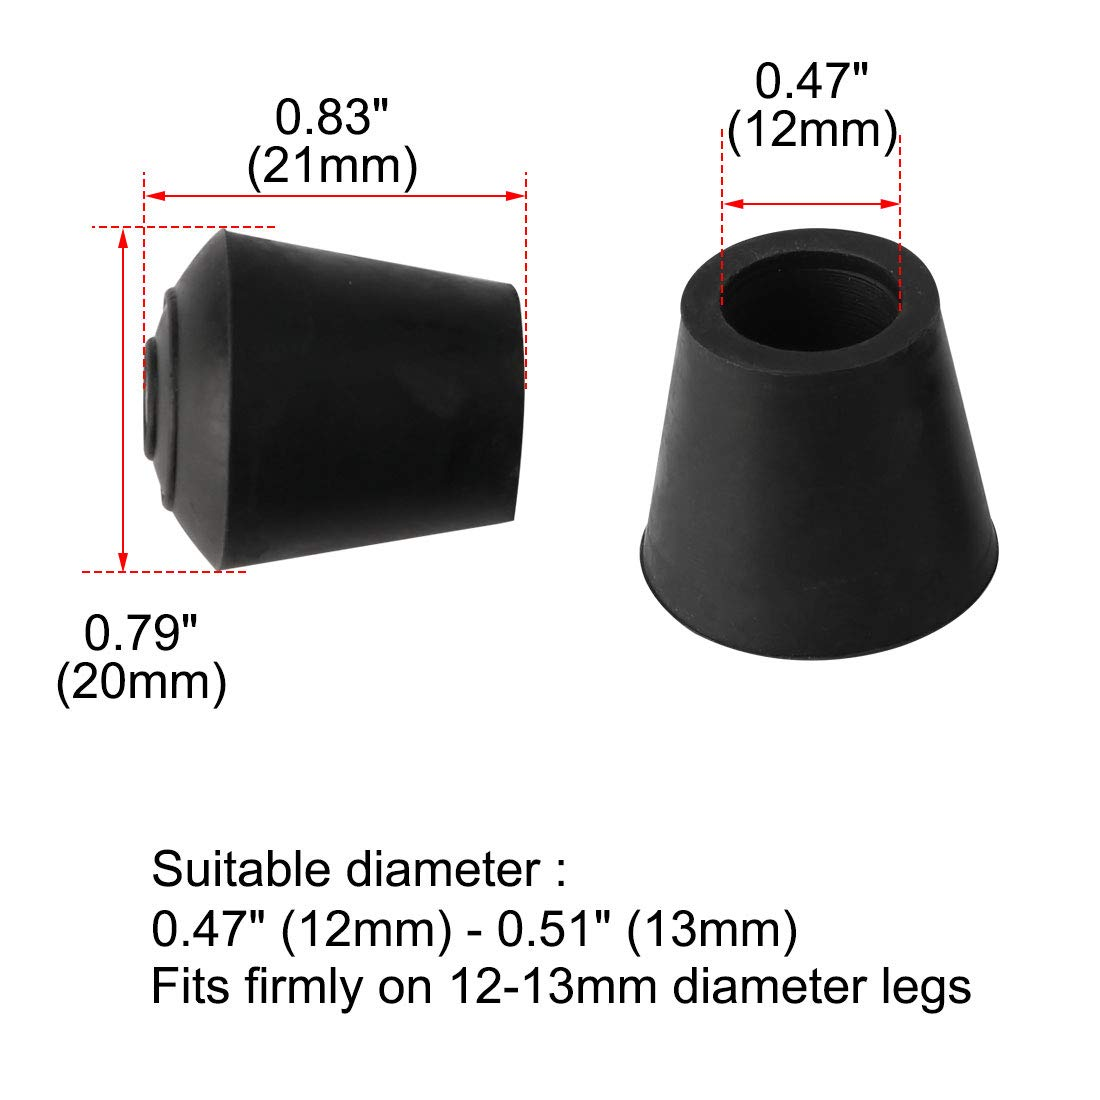 uxcell 9pcs Chair Leg Tips Caps 32mm 1 1//4 Inch Anti Slip Rubber Furniture Table Feet Cover Floor Protector Reduce Noise Prevent Scratch